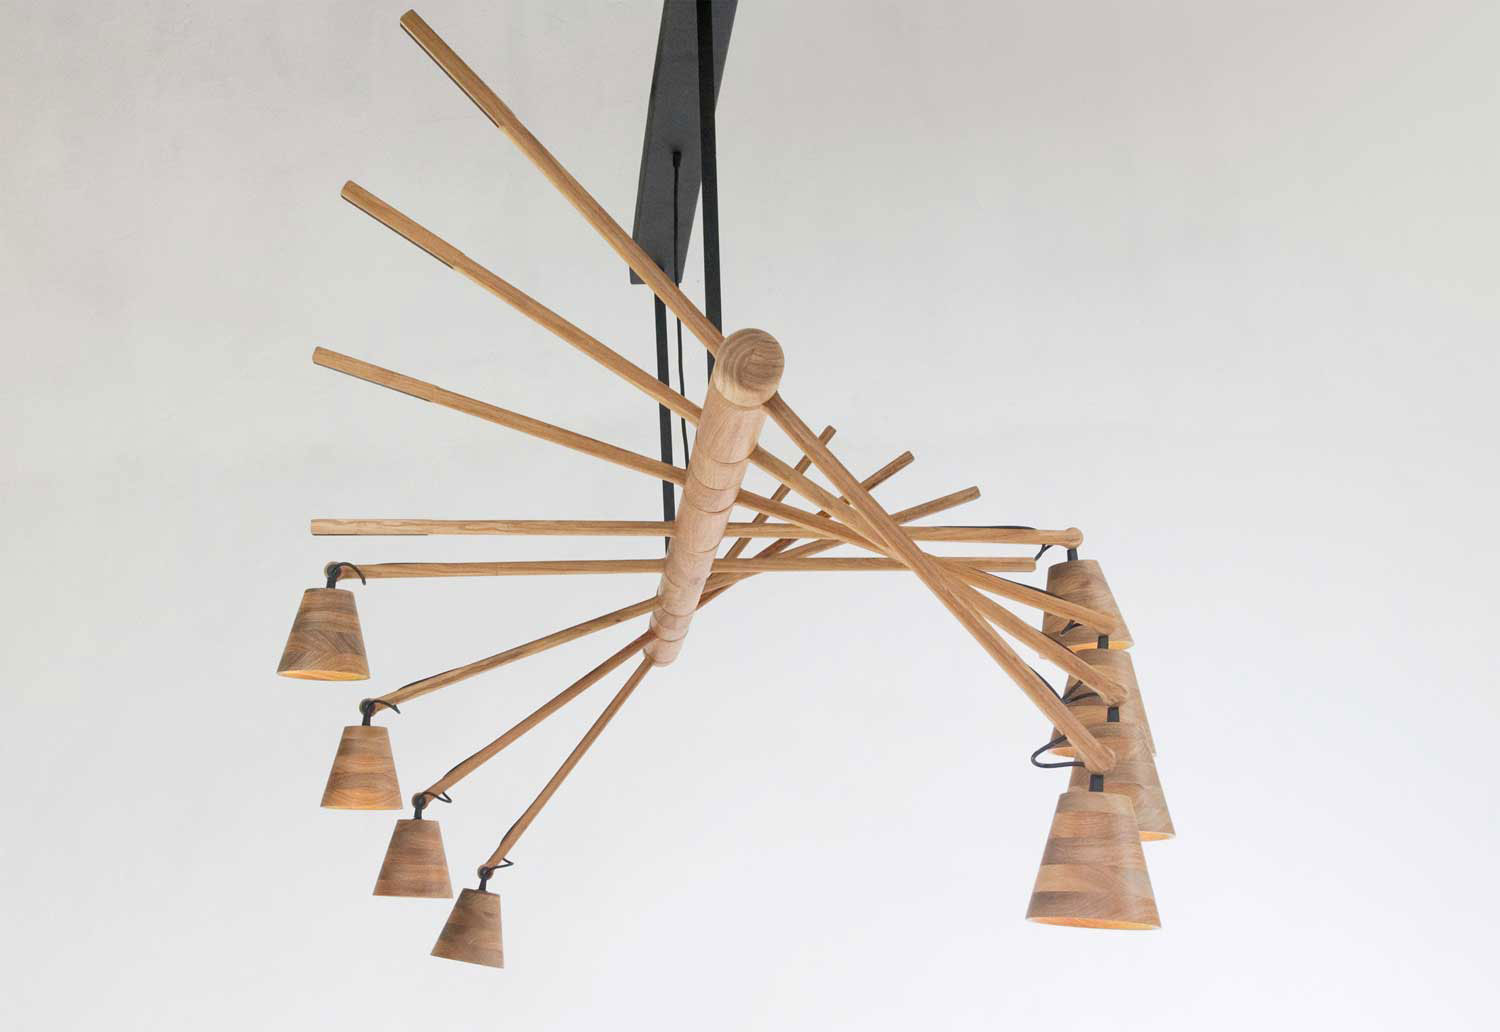 Haywire Imbuia Chandelier by David Krynauw at Design Days Dubai 2014 | Yellowtrace